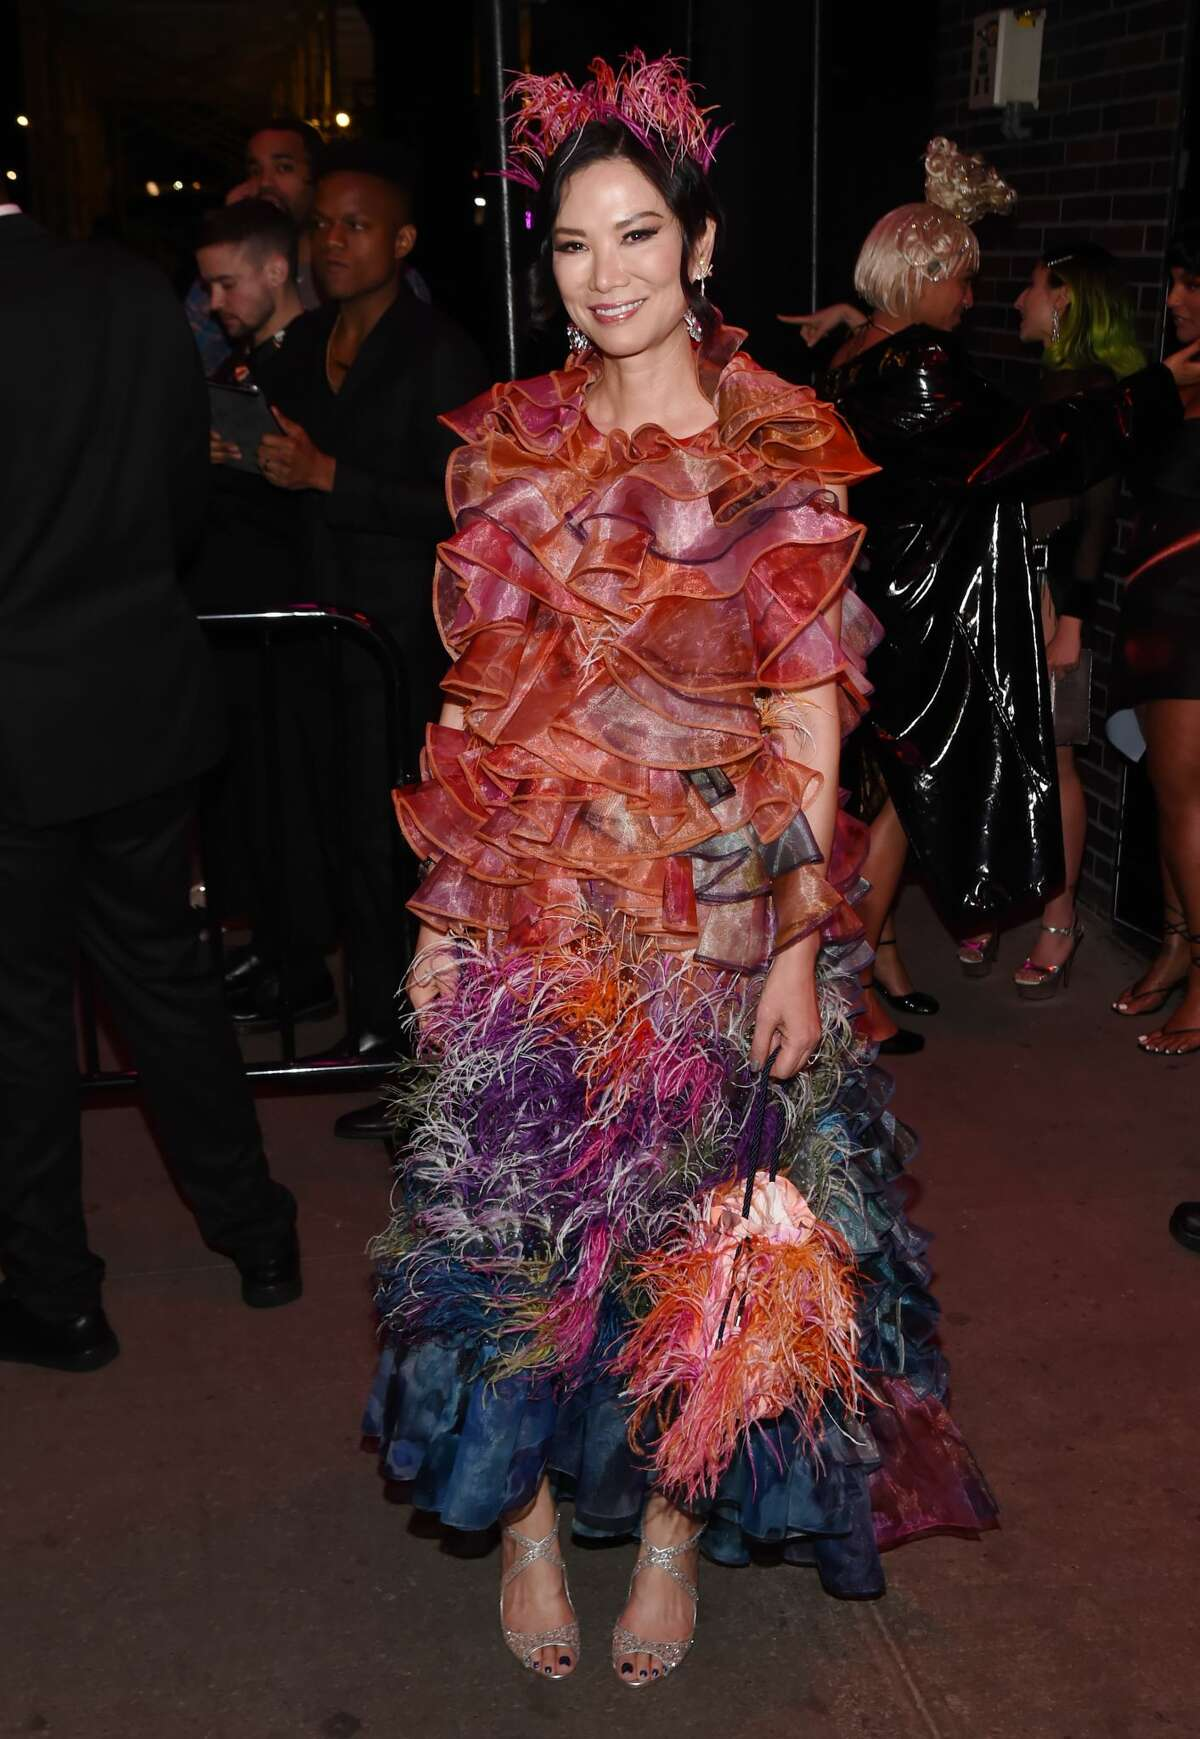 NEW YORK, NEW YORK - MAY 06: Wendi Murdoch attends the 2019 Met Gala Boom Boom Afterparty at The Standard hotel on May 06, 2019 in New York City. (Photo by Daniel Zuchnik/GC Images)